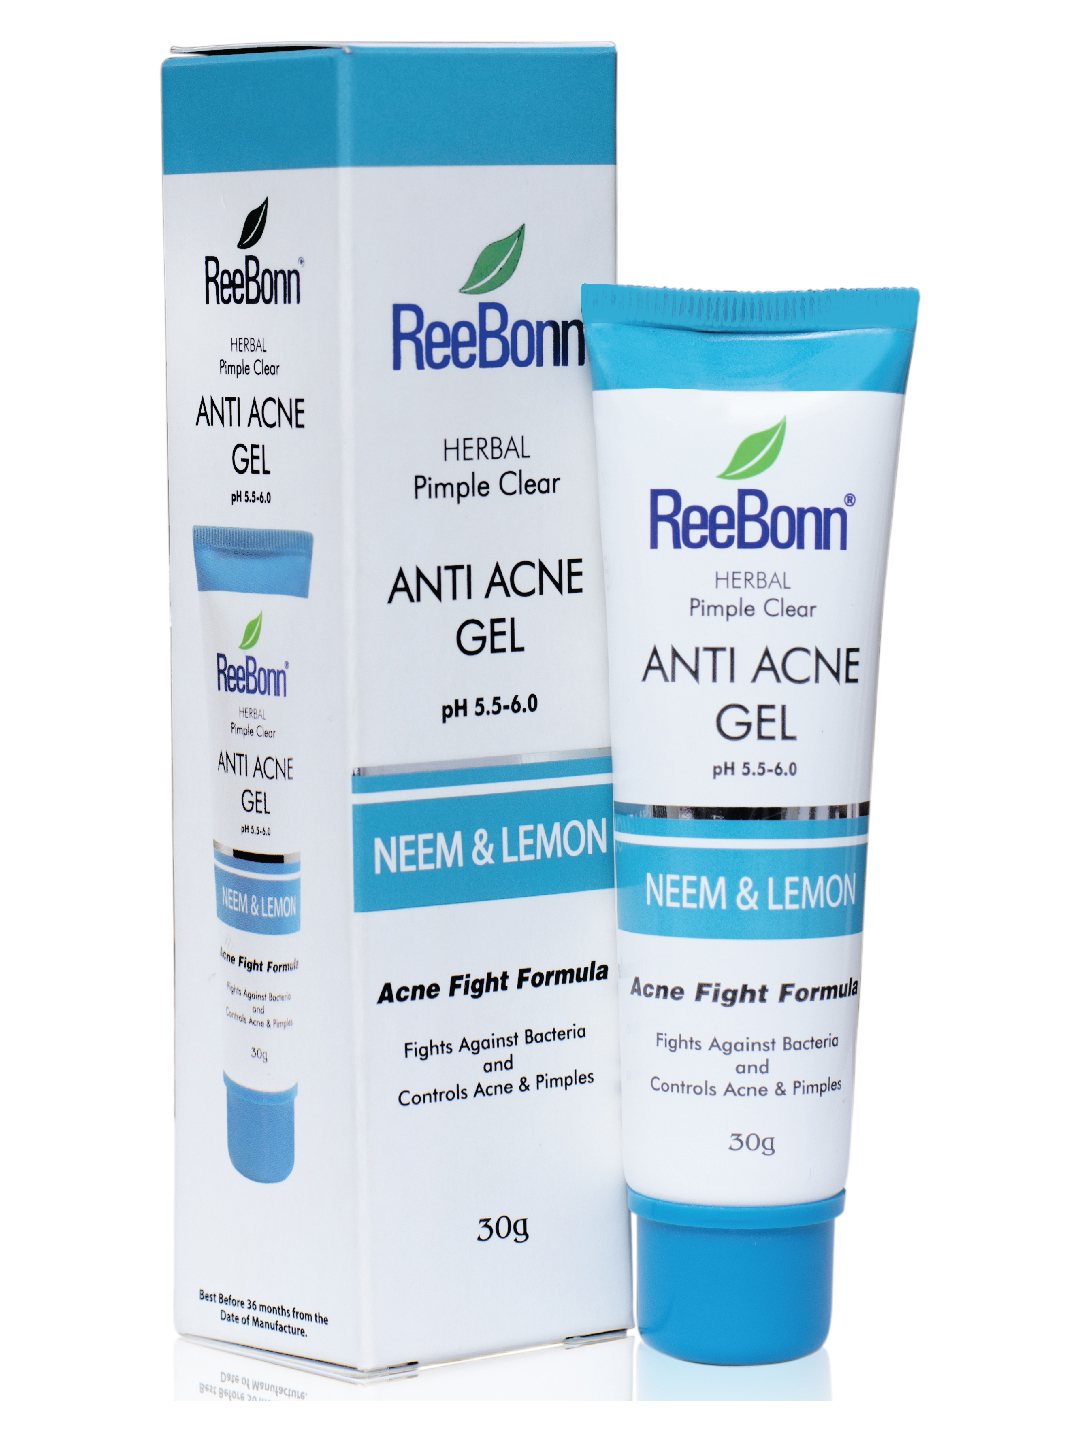 Pimple Clear Anti Acne Gel Reebonn Cosmetics Sri Lanka